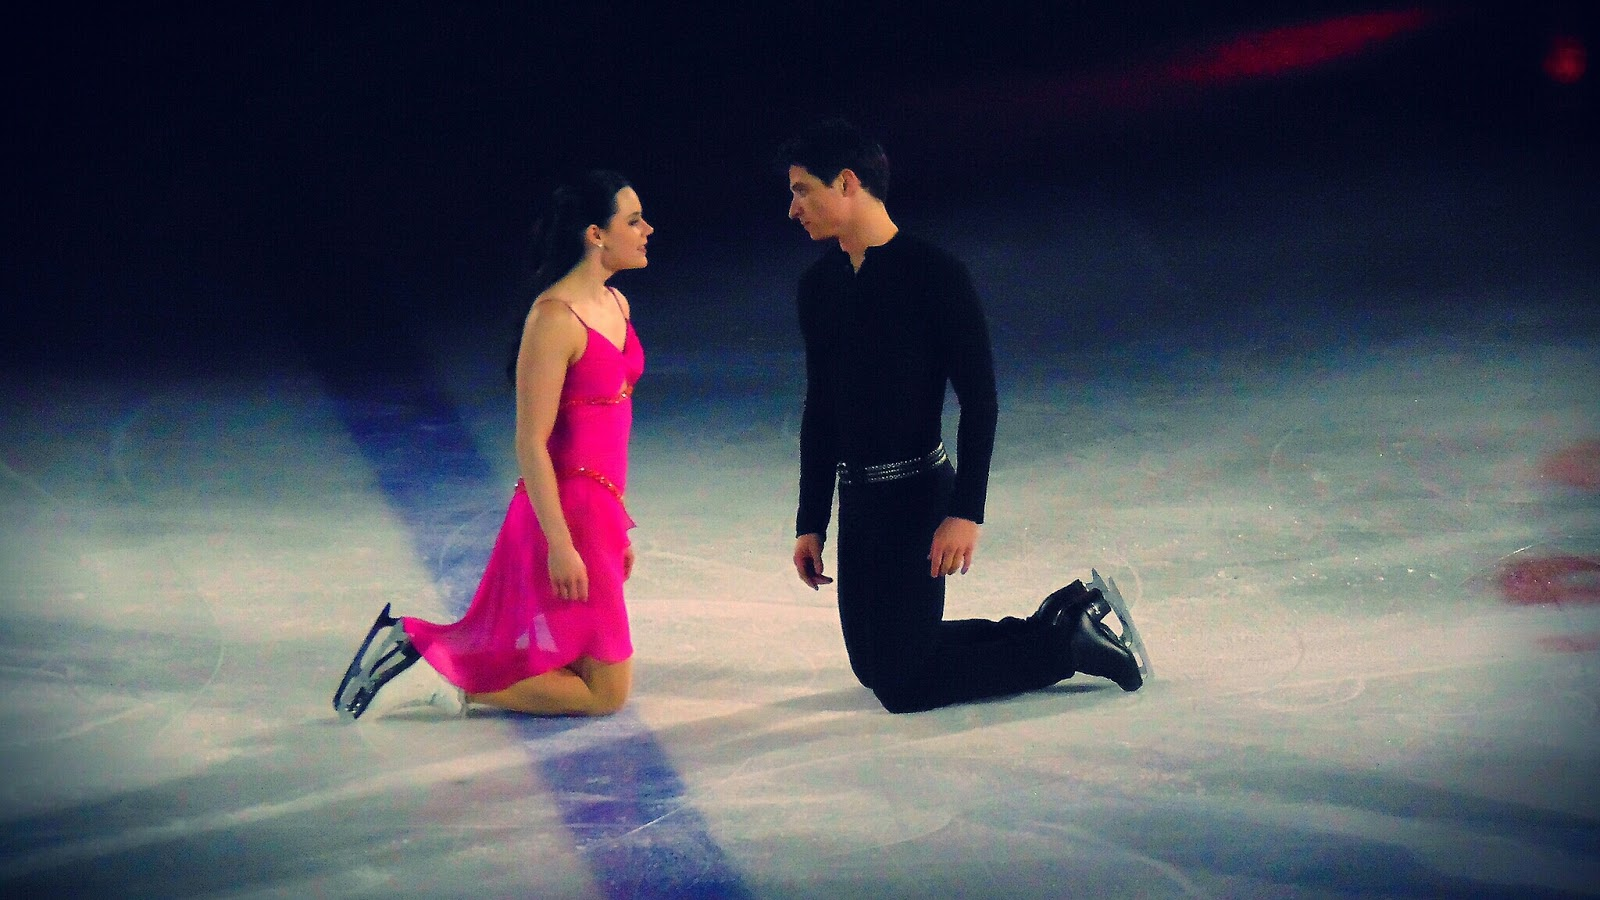 Ice dancers Tessa Virtue and Scott Moir perform